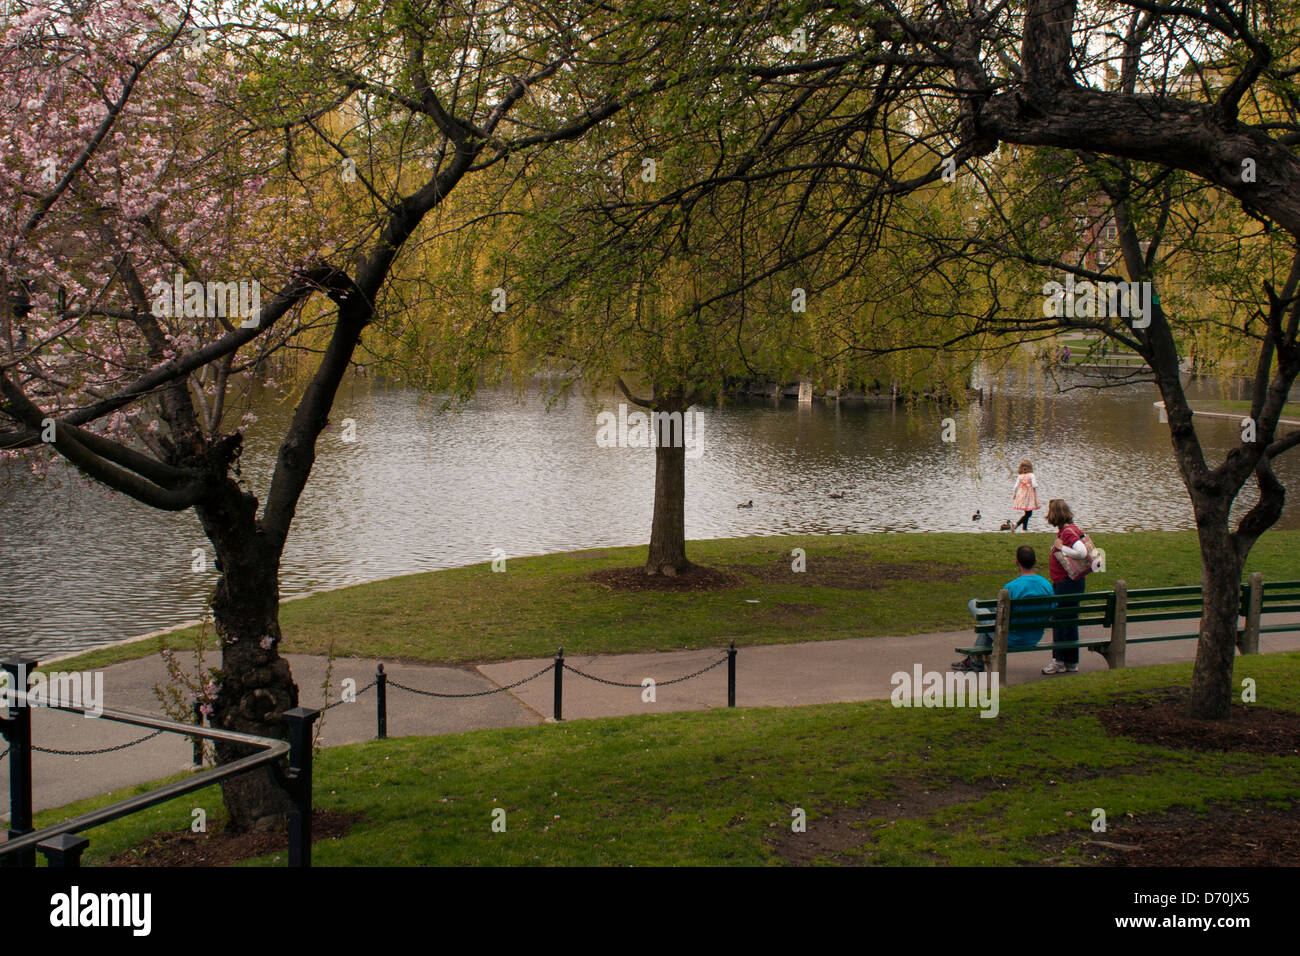 Springtime Boston Public Gardens Stock Photos & Springtime Boston ...